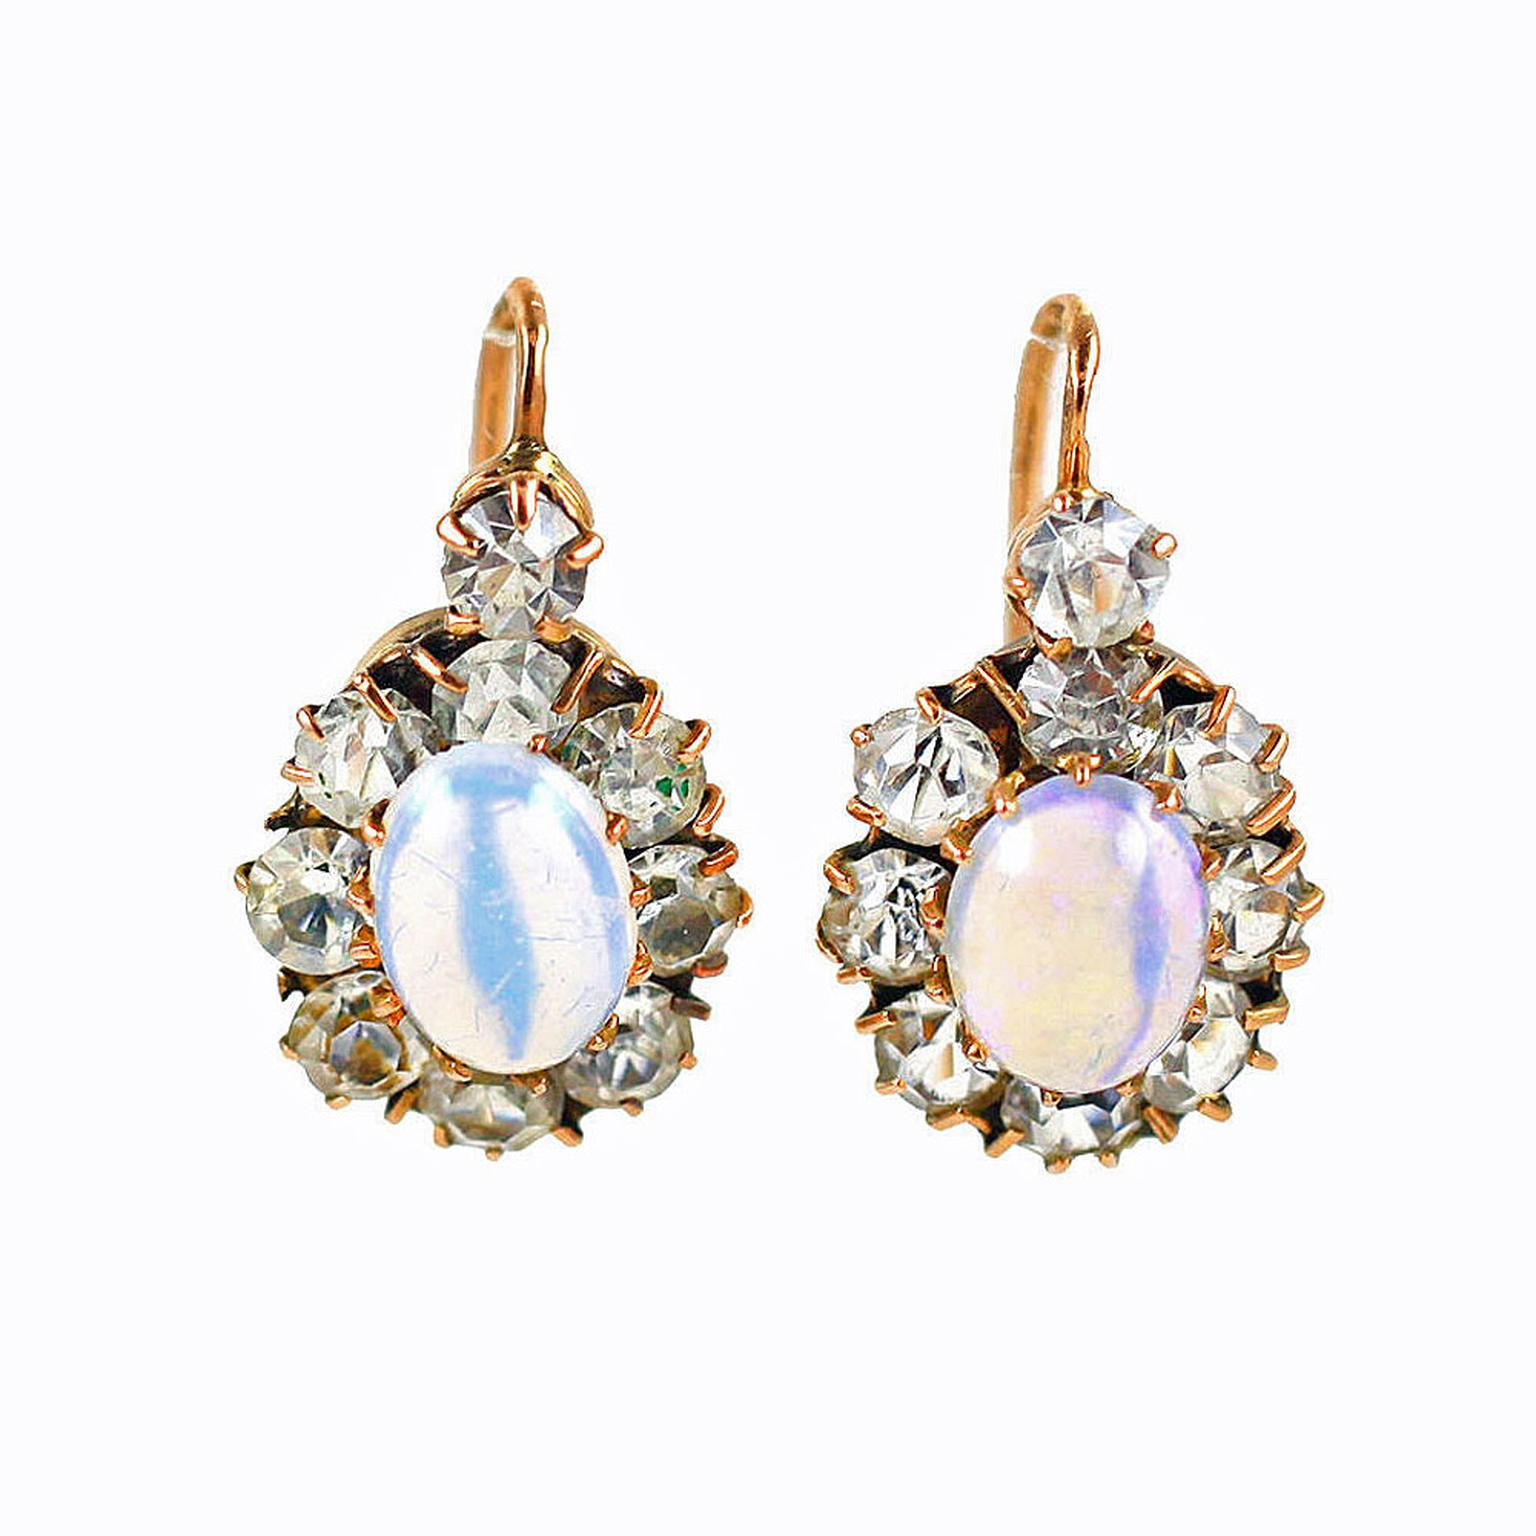 Glorious Antique Jewelry opal and diamond earrings